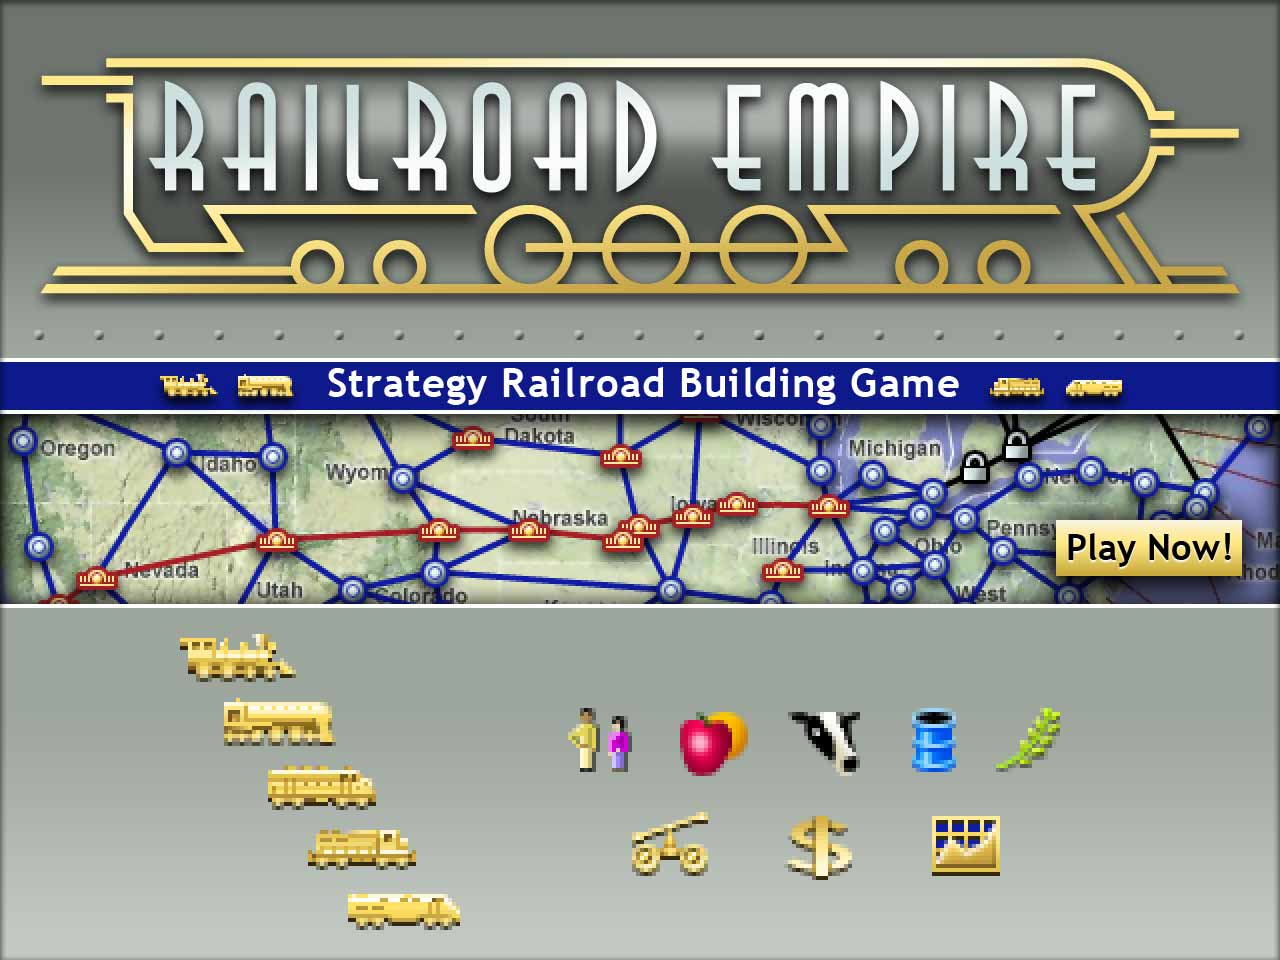 Railroad Empire logo and illustrations